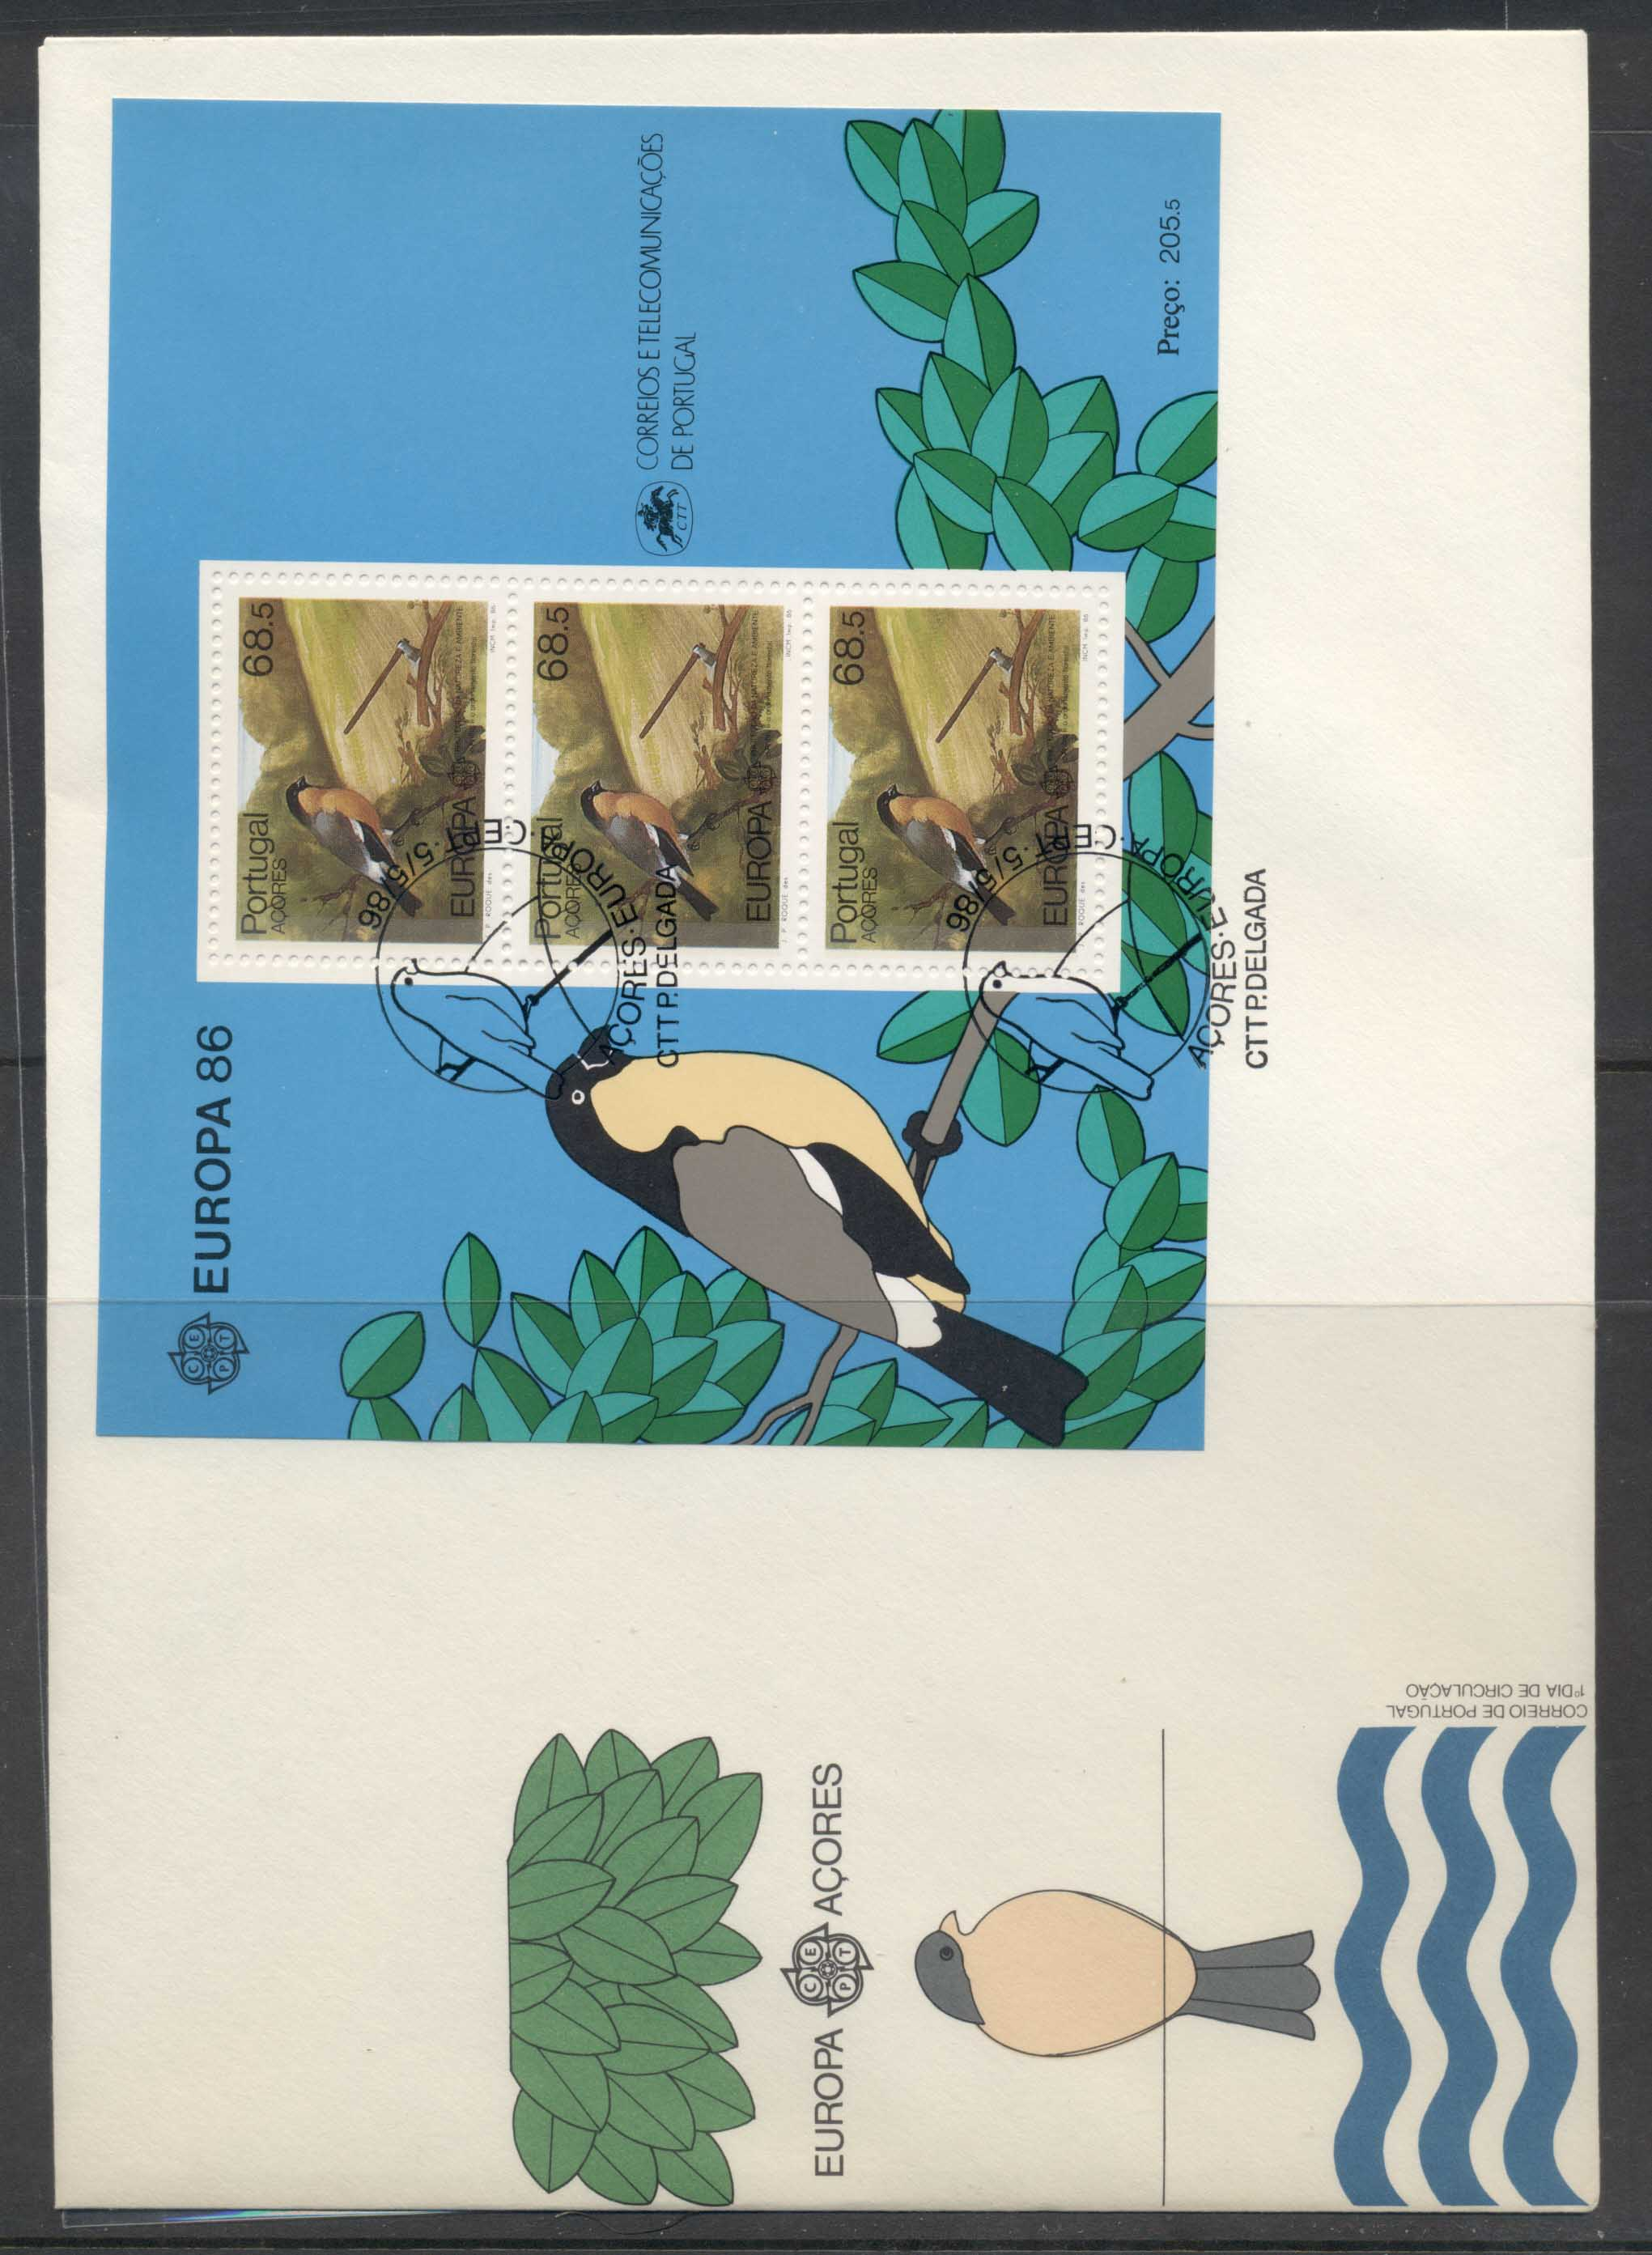 Azores 1986 Europa Environment XLMS FDC